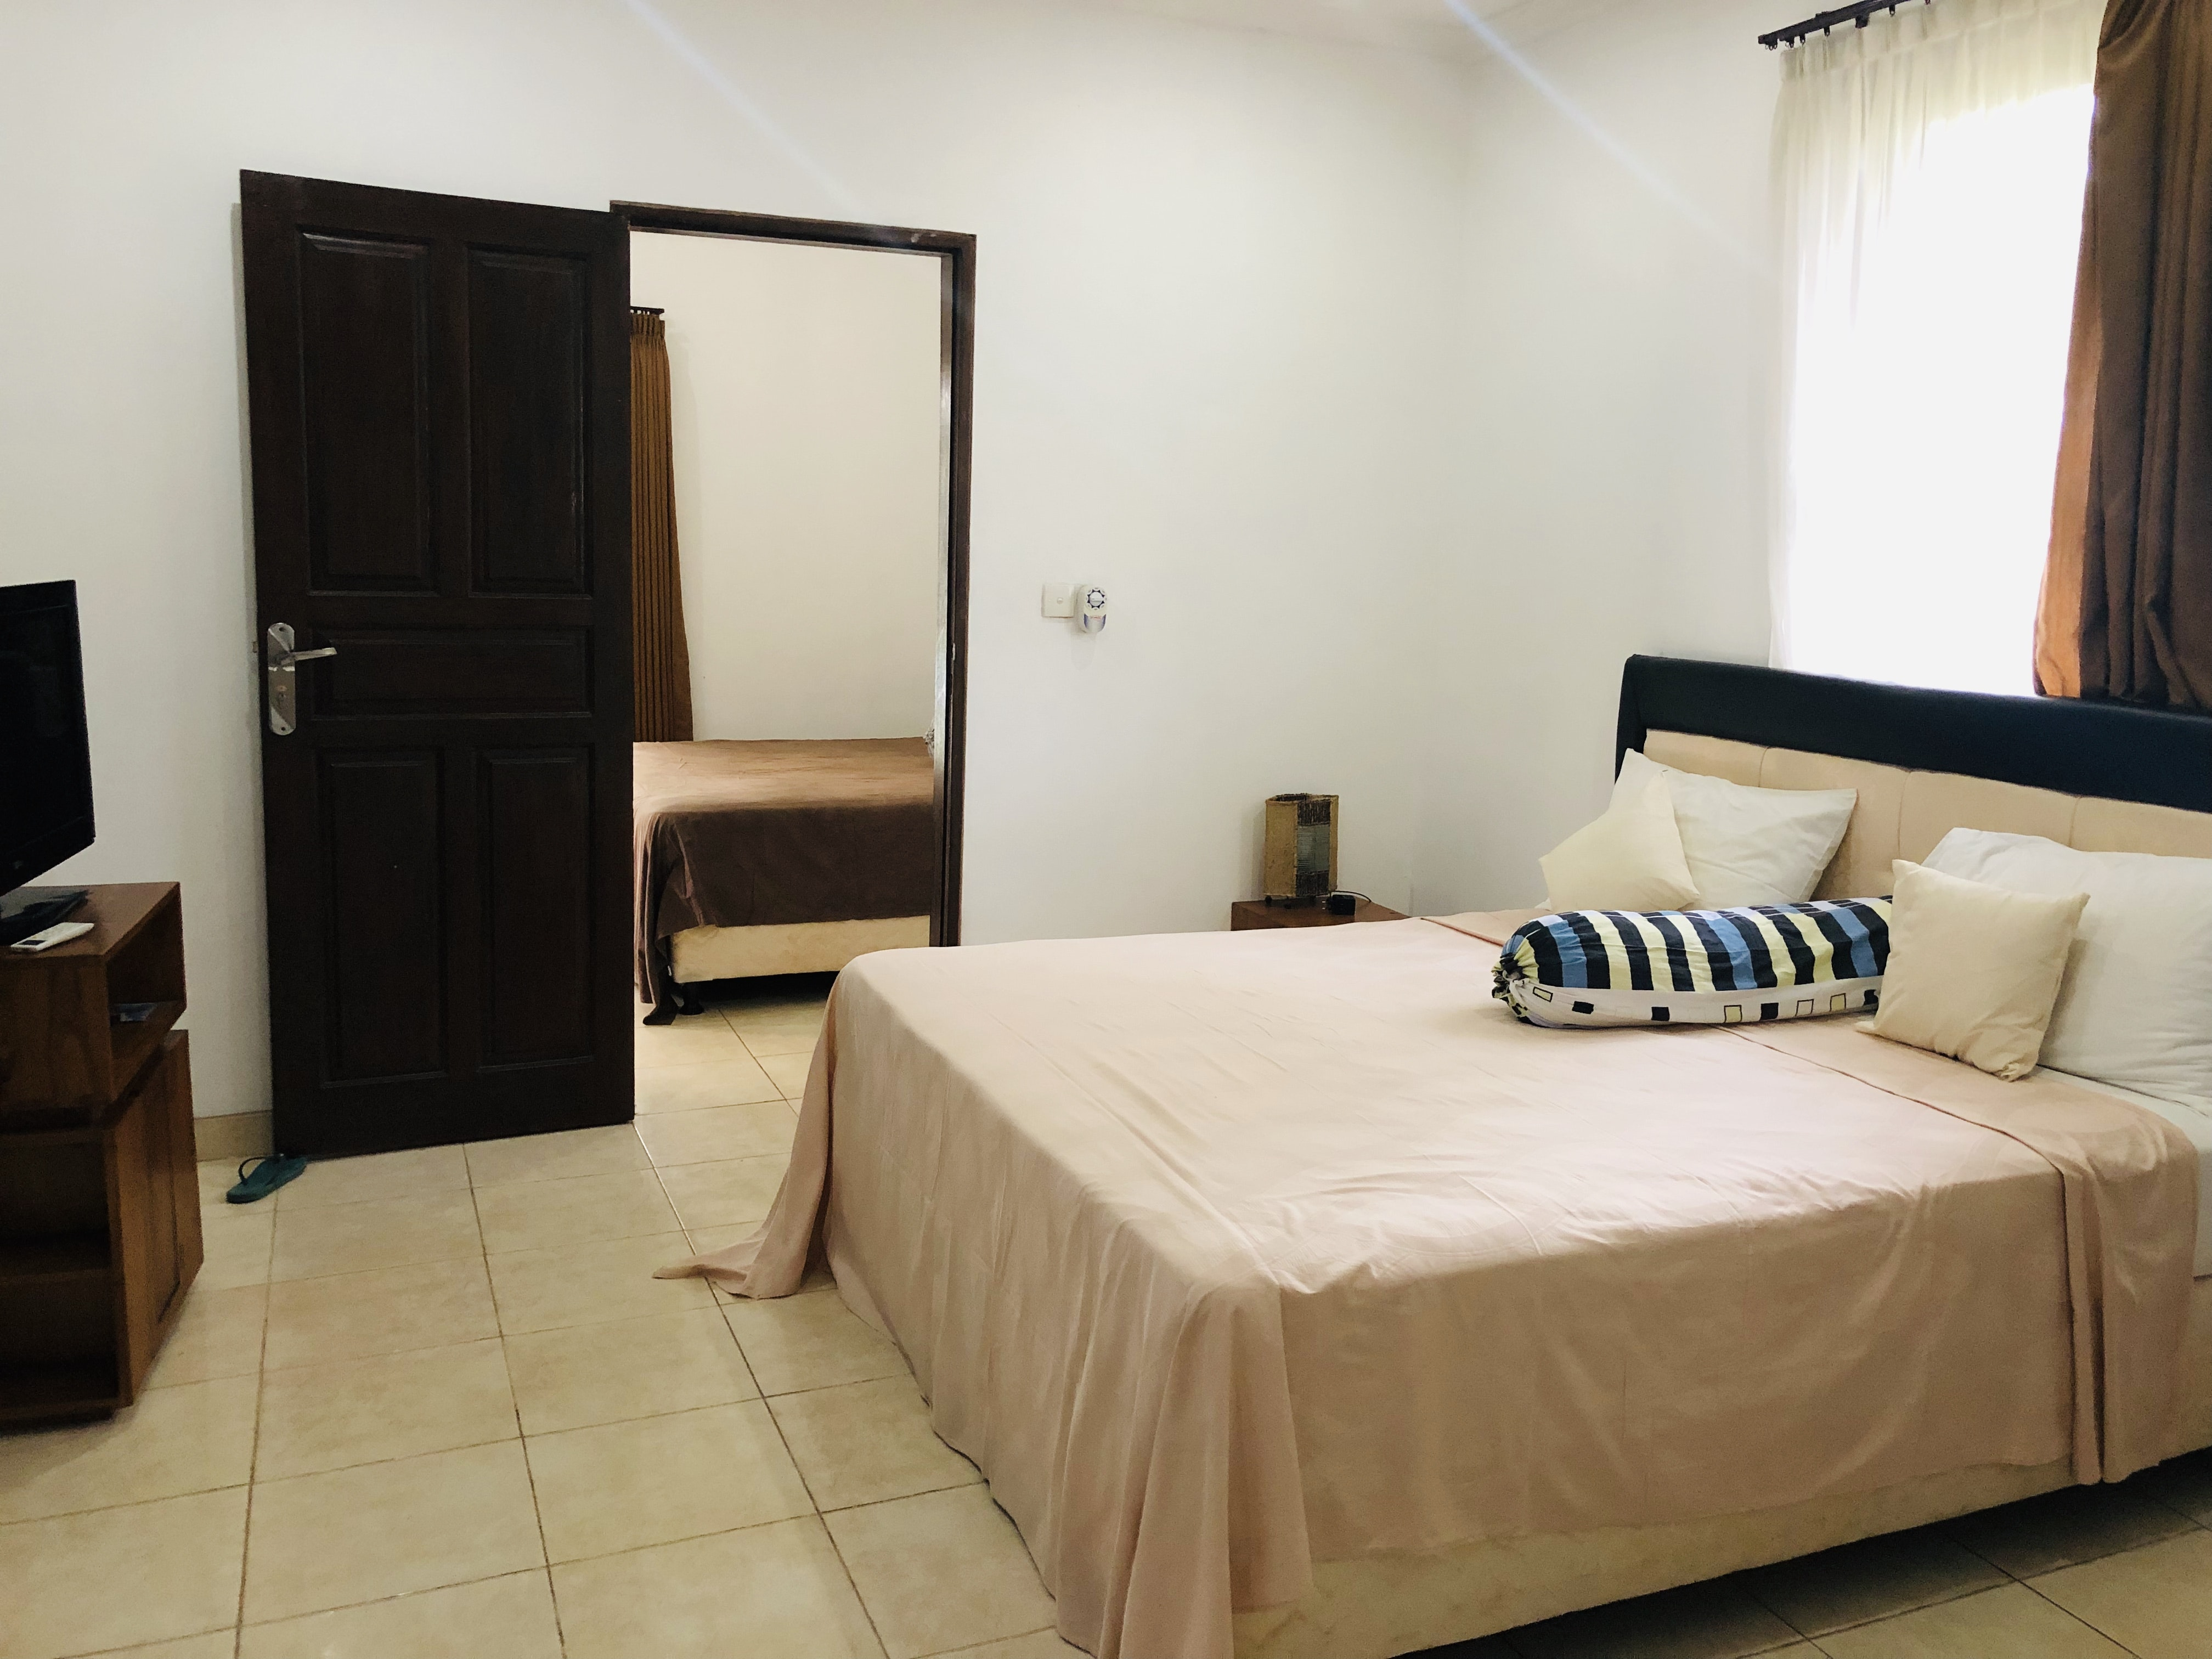 Lembongan Beach House and Apartments & Beach House Room 3 \u2013 2 Bedroom / 1 Bathroom | Lembongan Beach House ...